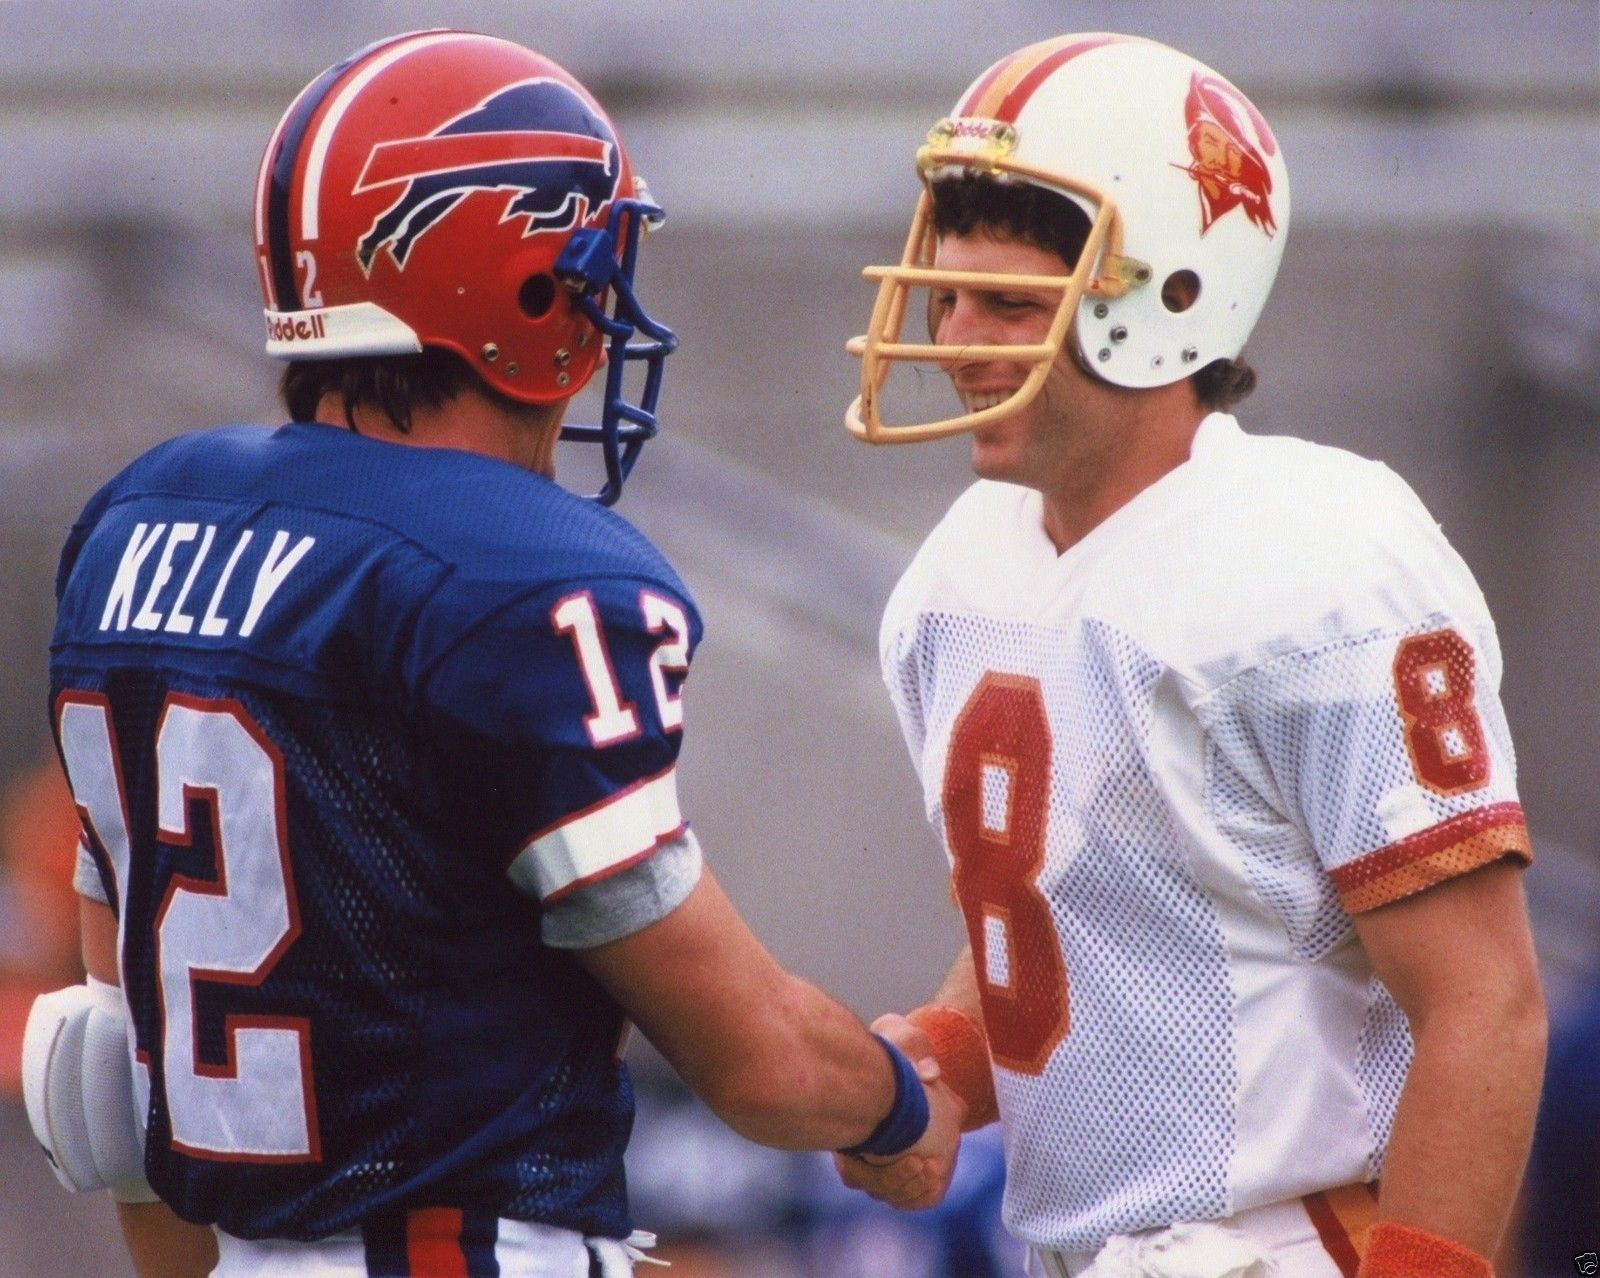 Steve Young Tampa Bay Buccaneers Jim Kelly Buffalo Bills 8x10 Sports Photo Xl Nfl Football Players Canadian Football League Carolina Panthers Football